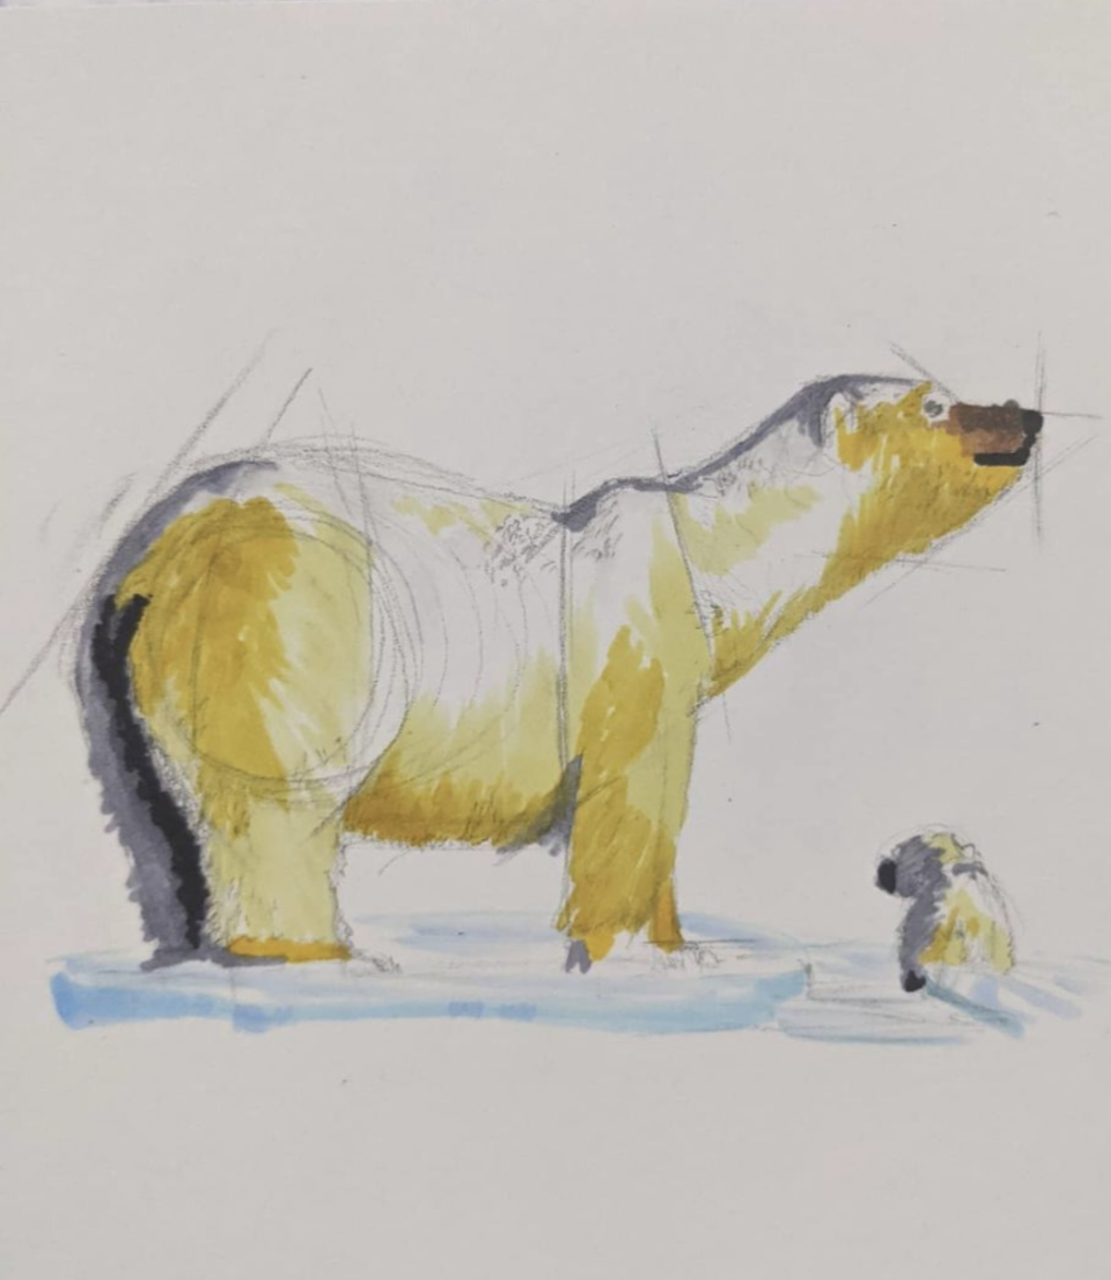 Polar Bear on Ice by Caleb Arkell, 6 x 8, Pencil and Markers